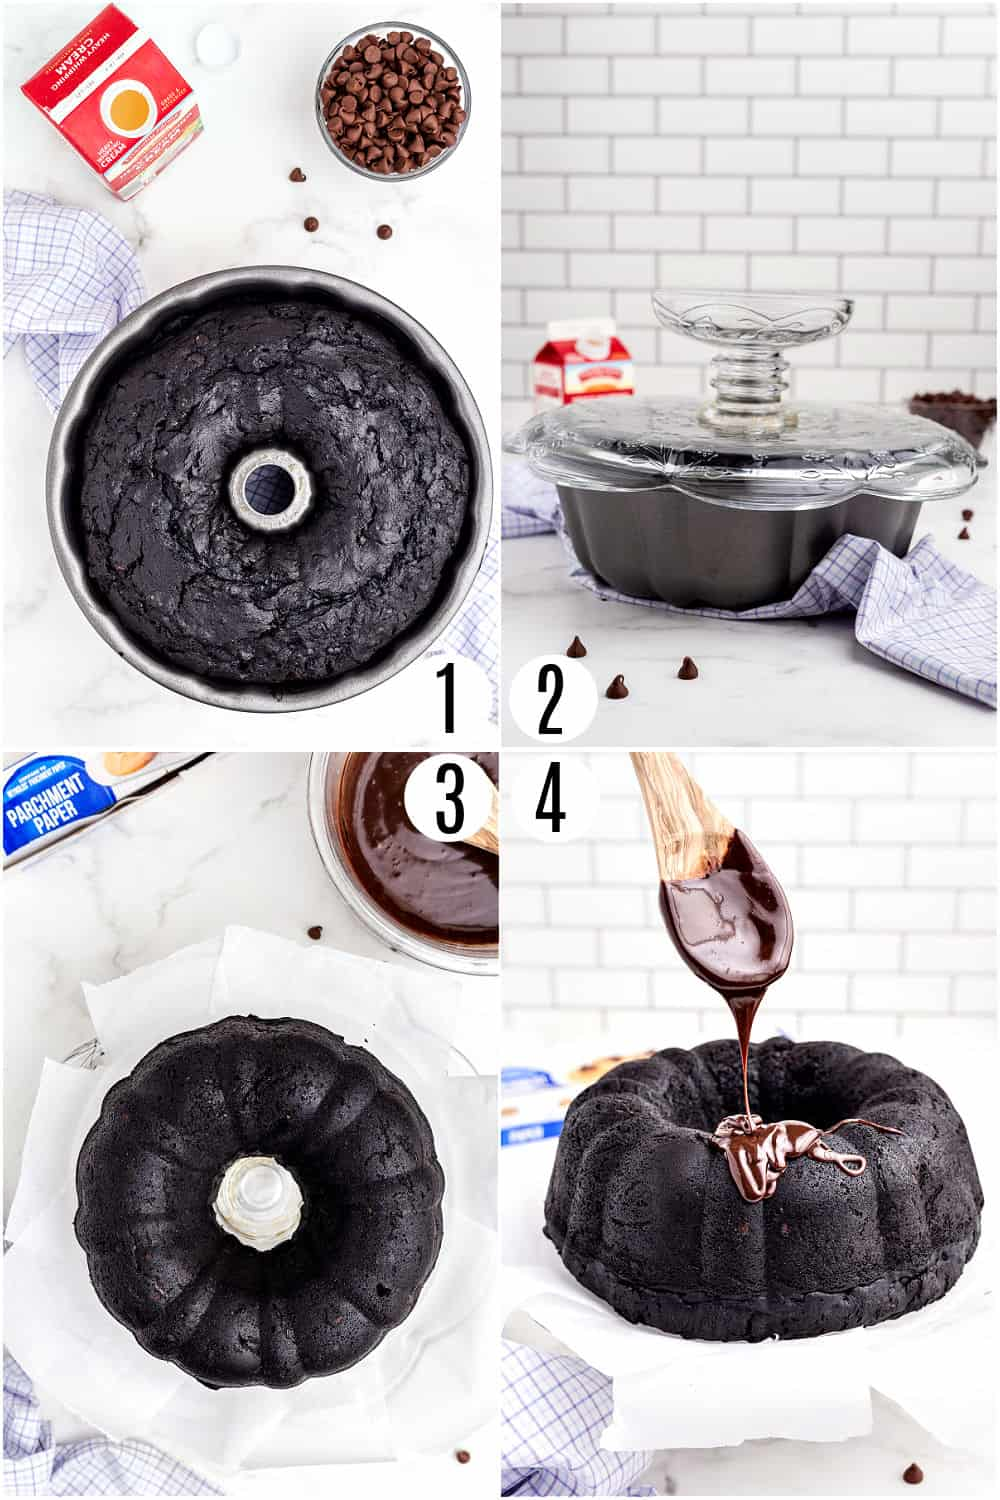 Step by step photos showing how to garnish a chocolate bundt cake with ganache.